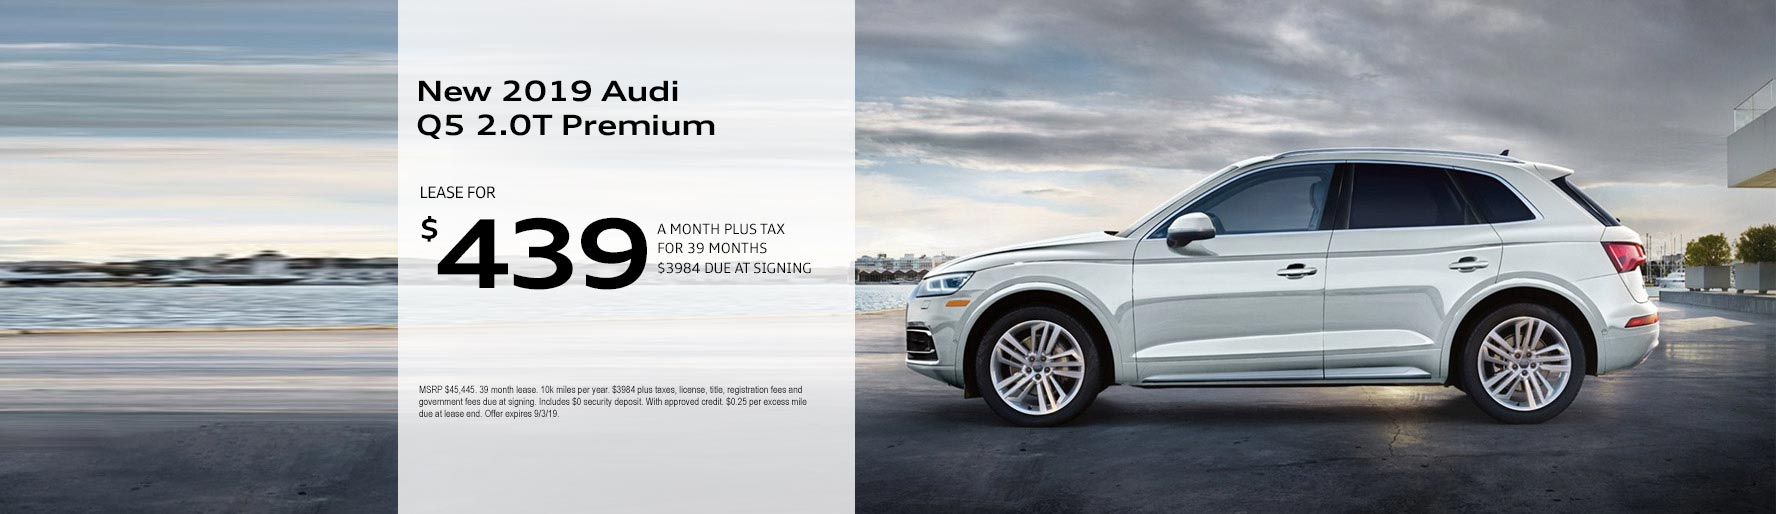 Audi Westmont | Audi Dealership in Westmont, IL